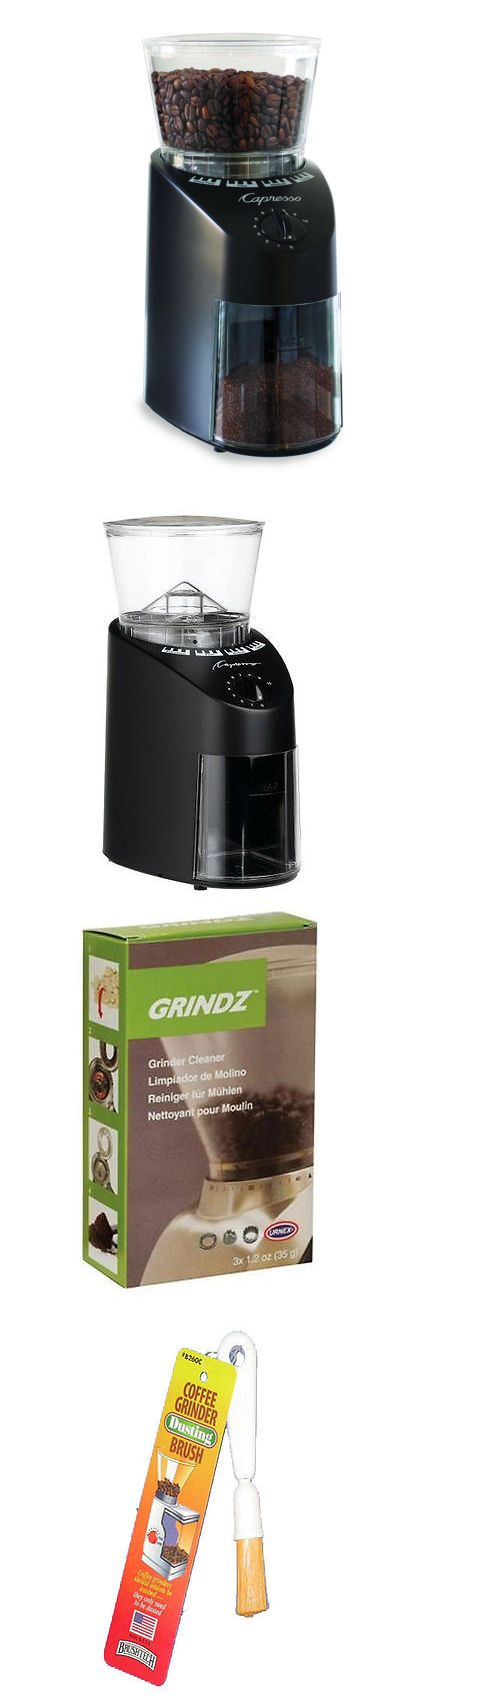 Coffee Grinders 32882: Capresso Jura Infinity 560 Conical Burr Coffee Grinder In Black + Accessory Kit -> BUY IT NOW ONLY: $104 on eBay!